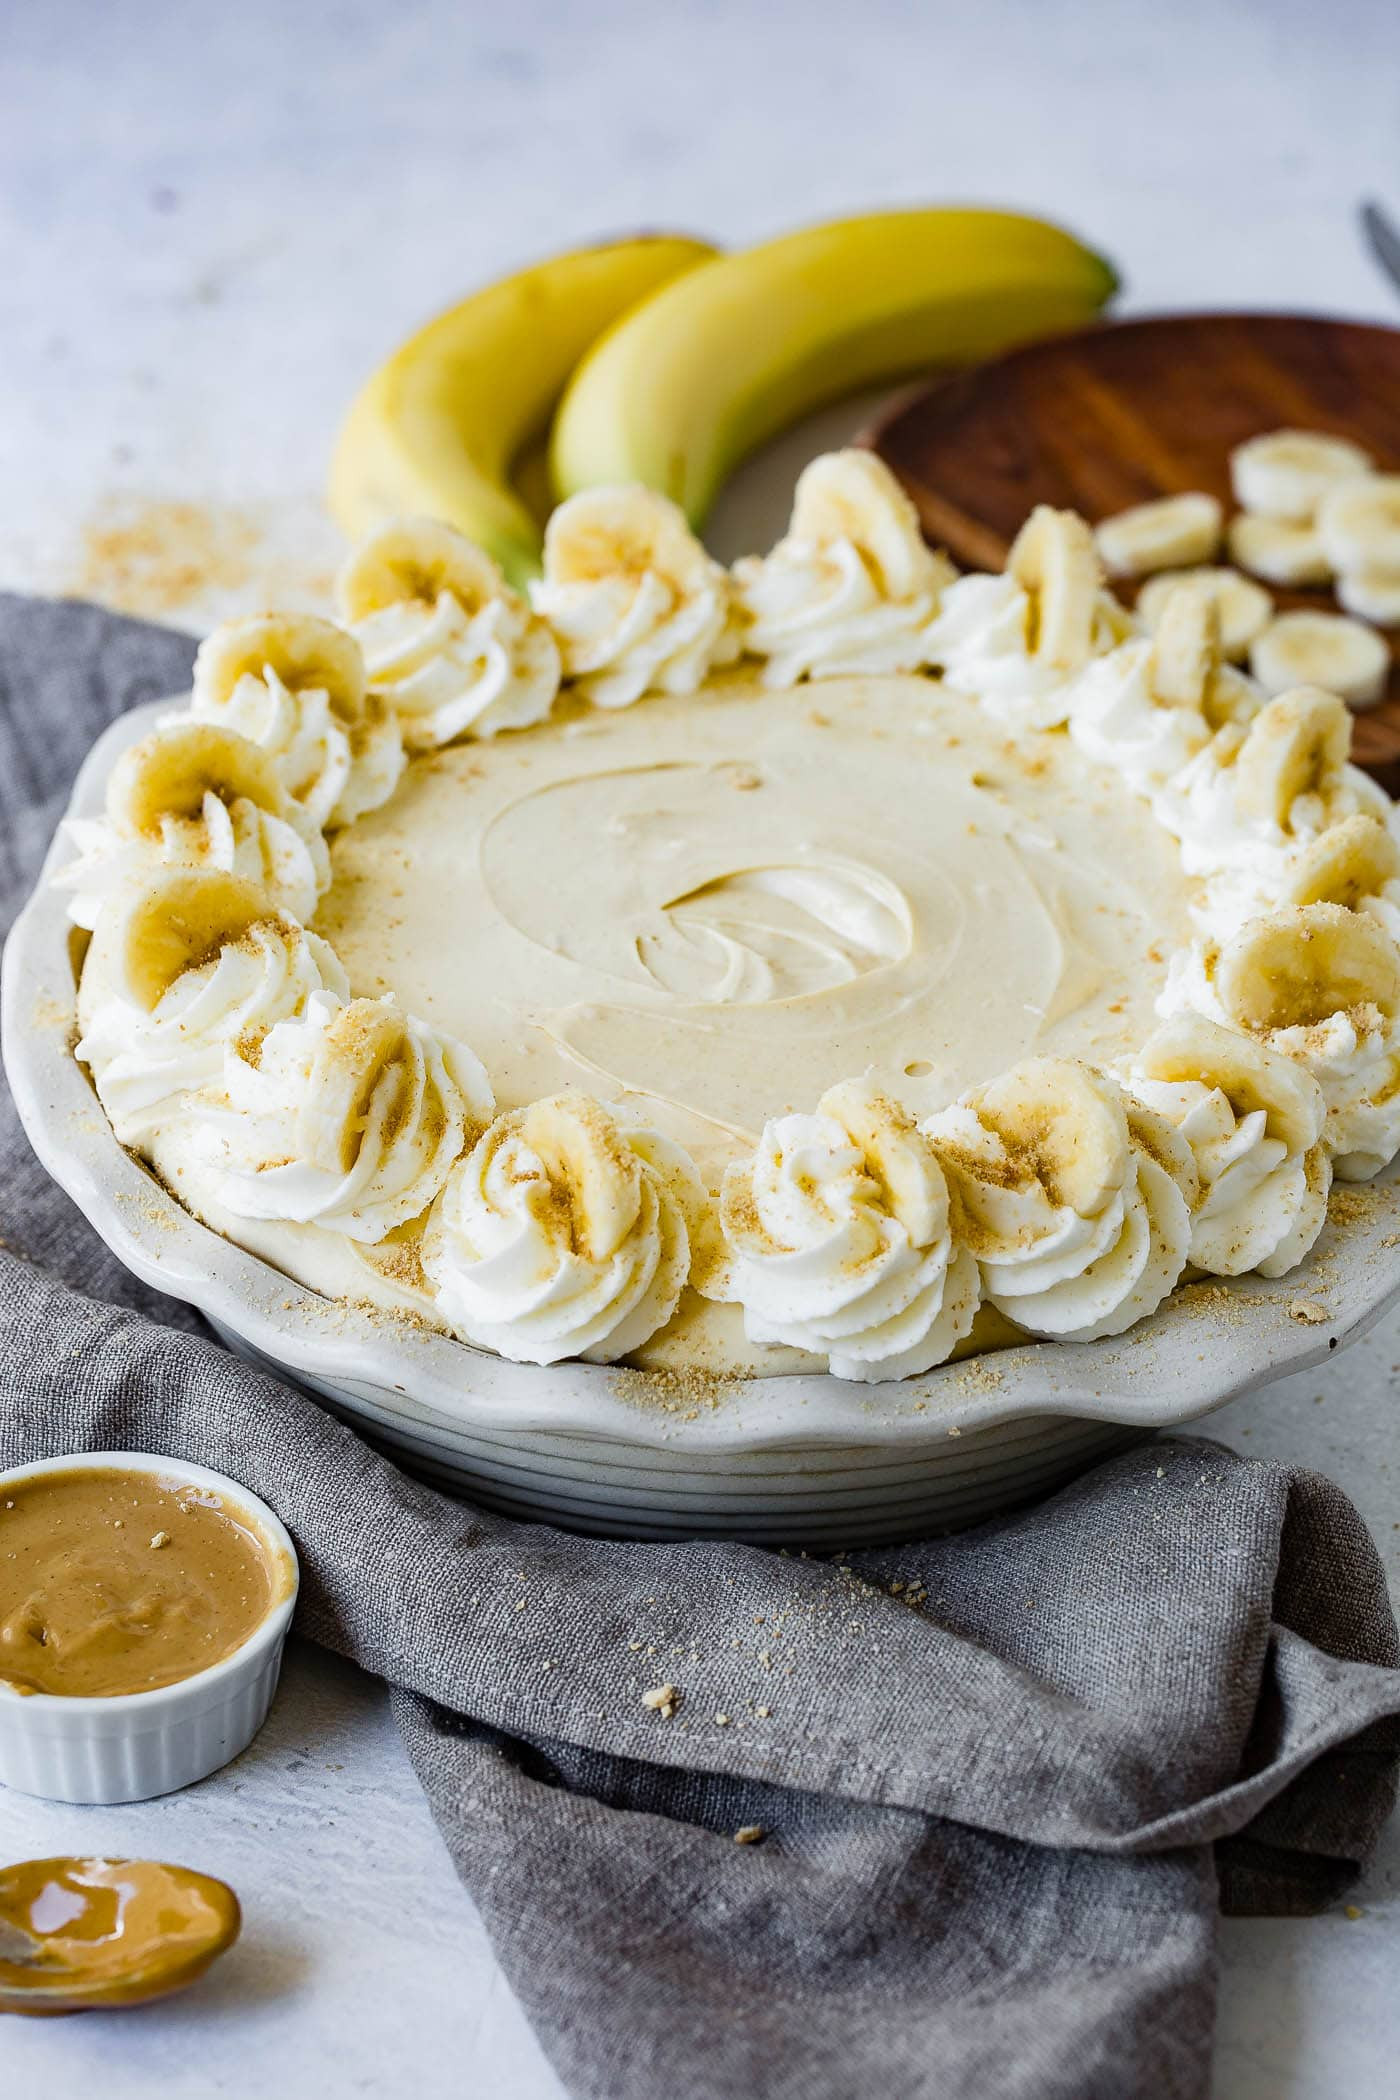 A peanut butter banana cream pie with whipped cream and bananas around the edge. There are bananas and peanut butter in the background.